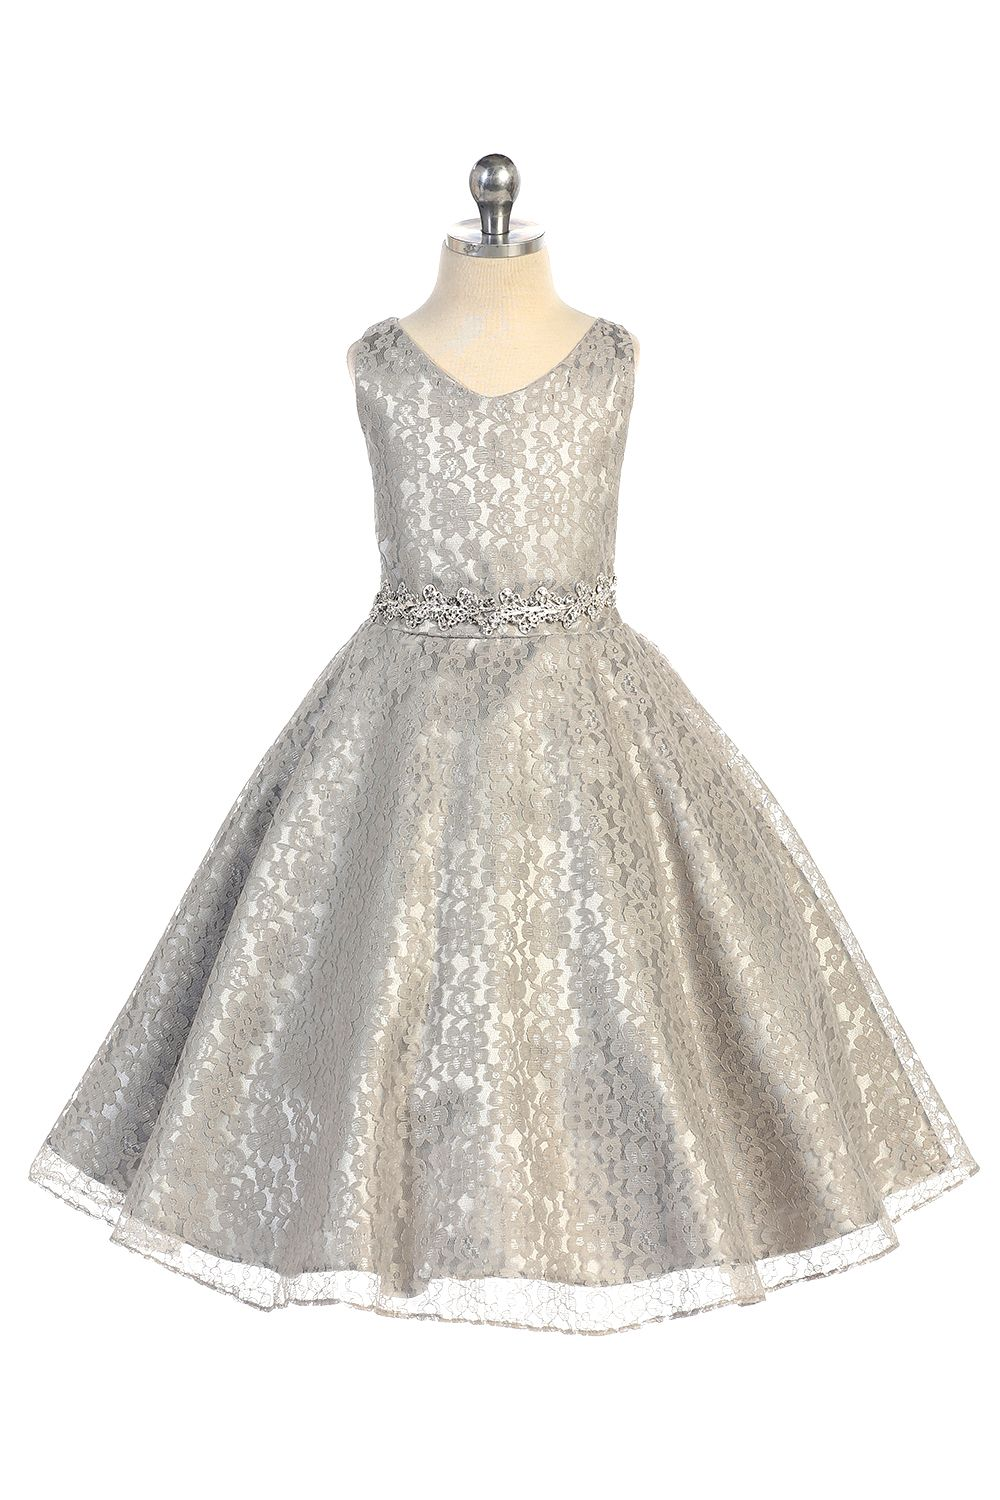 Silver gorgeous tulle lace vneck aline flower girl dress with